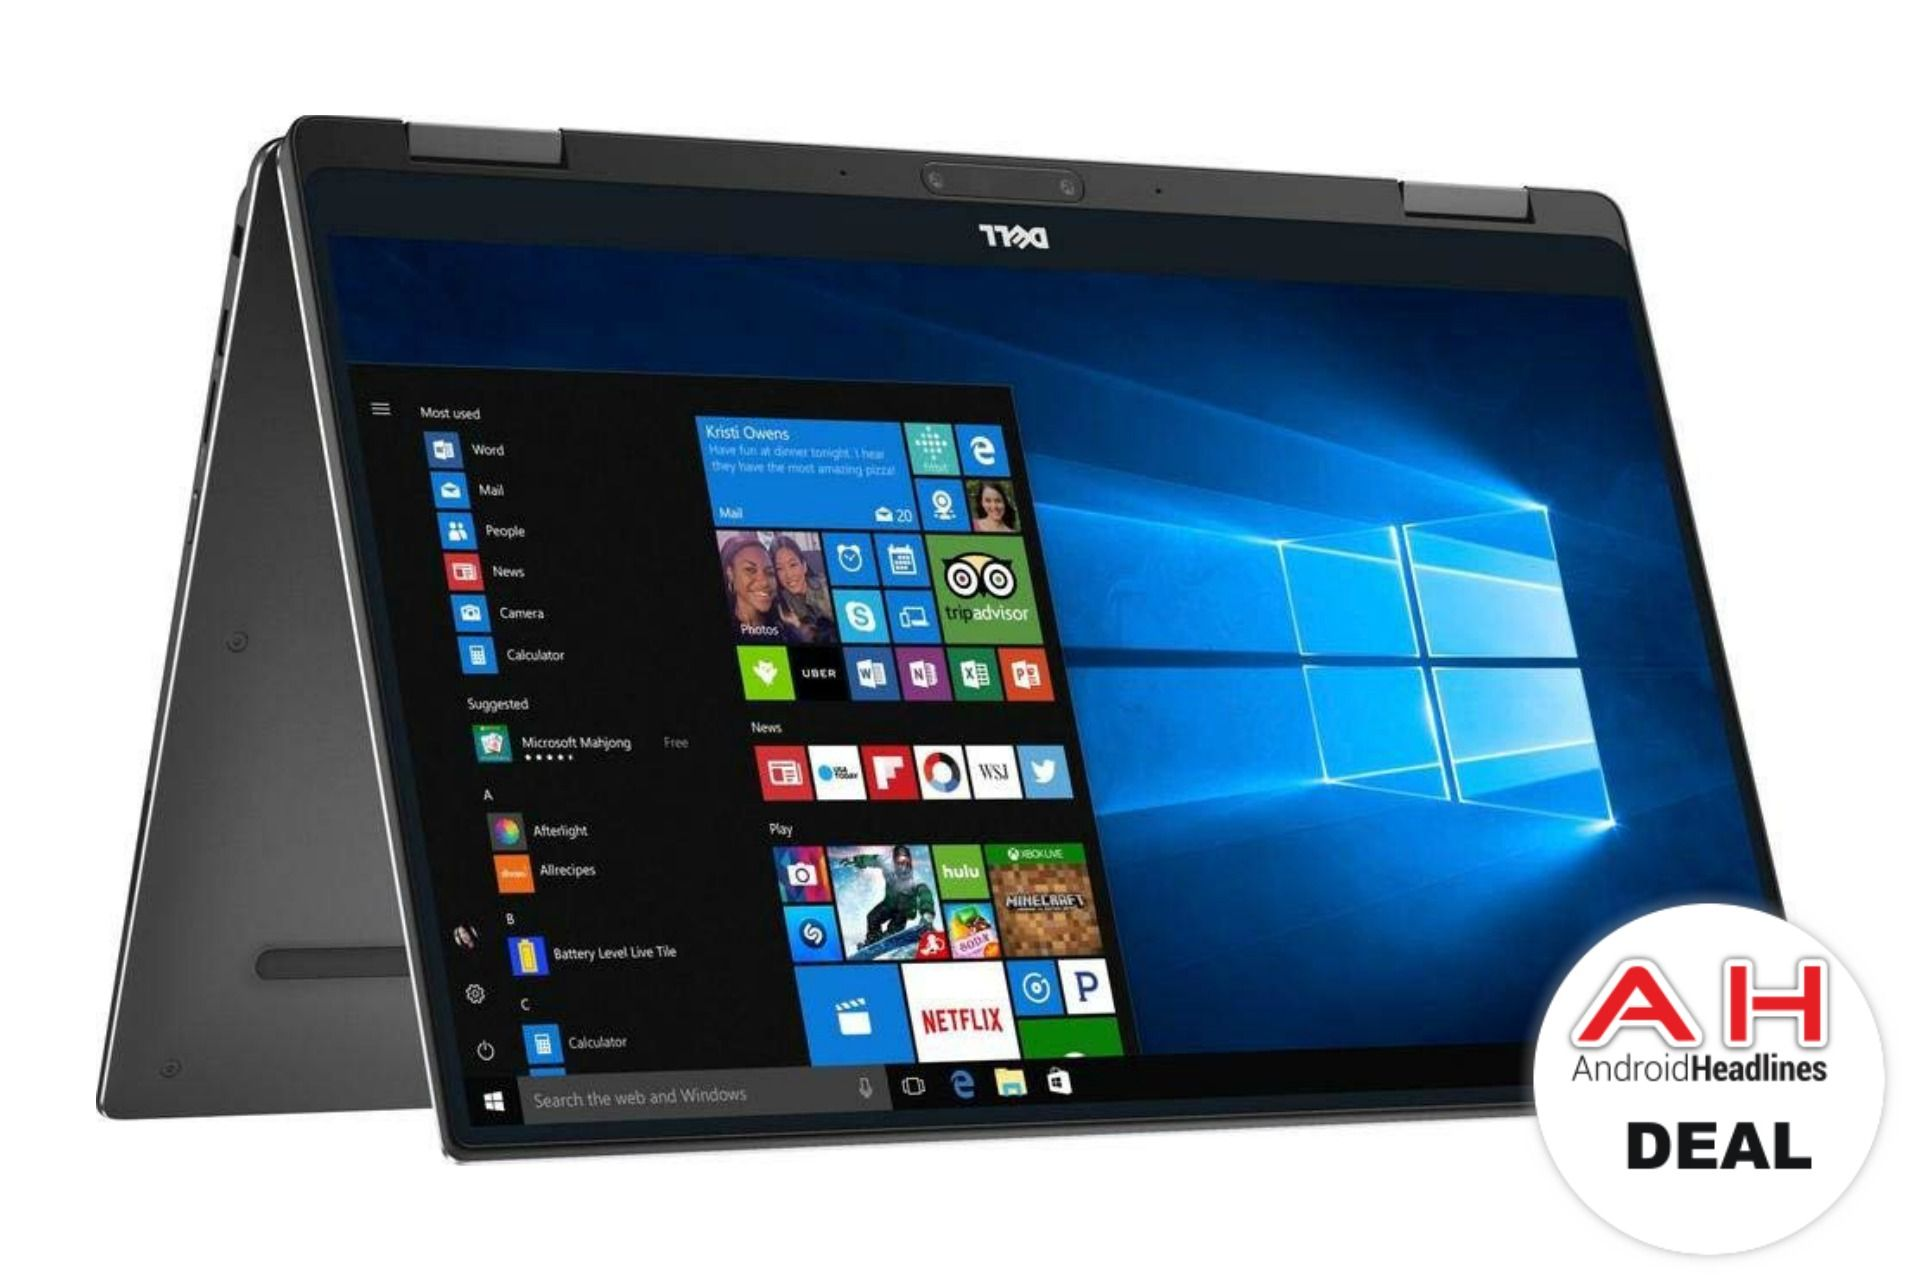 Deal Dell Xps 13 9365 13 Inch Convertible Laptop For 799 August 2018 Dell Xps 13 Dell Xps Dell